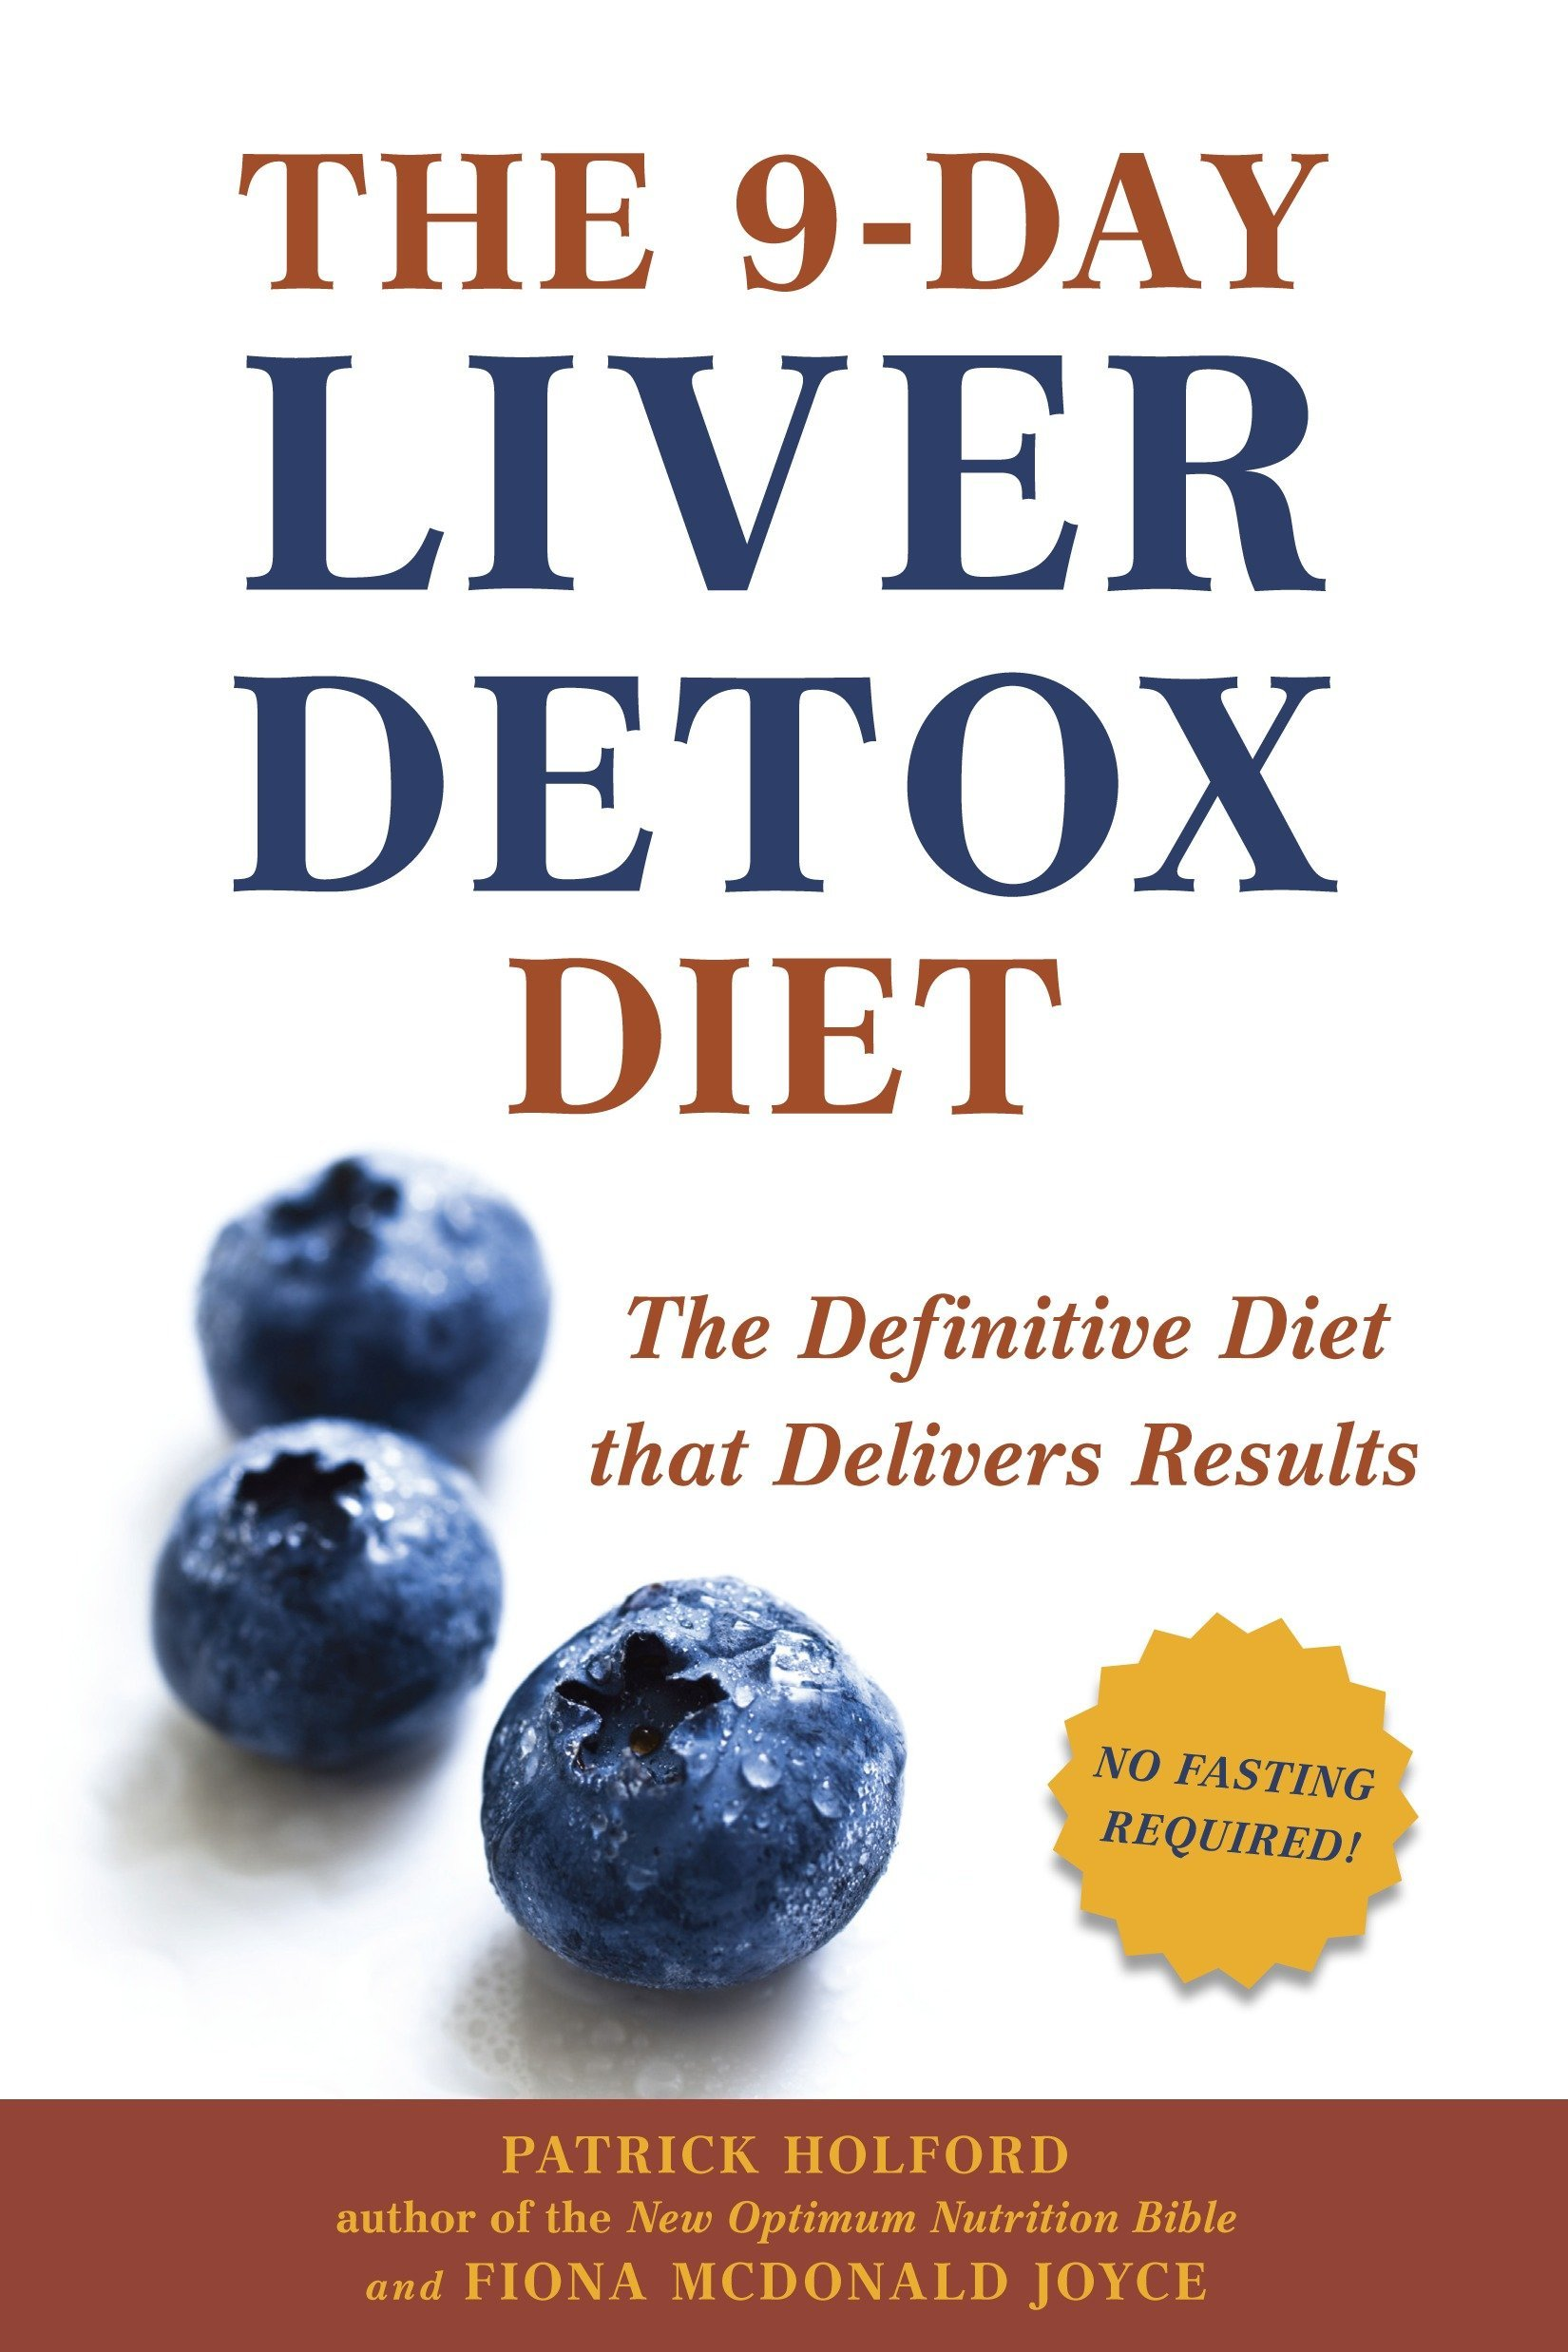 The 9-Day Liver Detox Diet: The Definitive Diet that